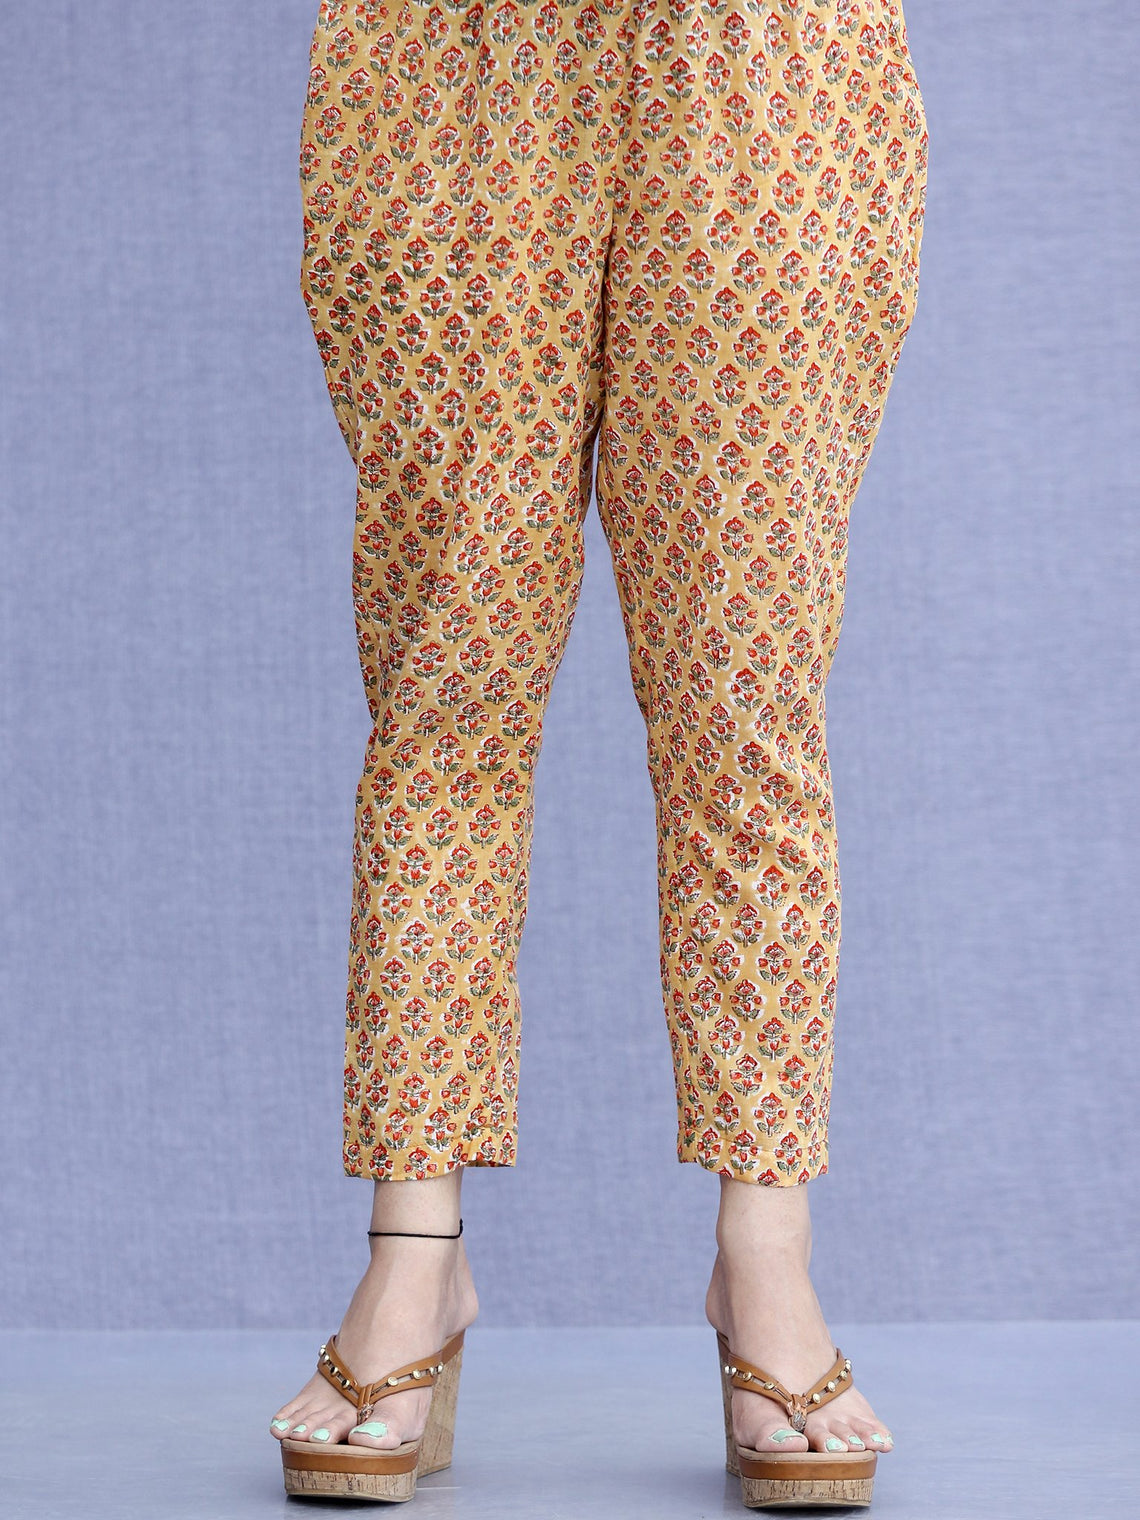 Jashn Anjum - Cotton Pants - KP70A2270